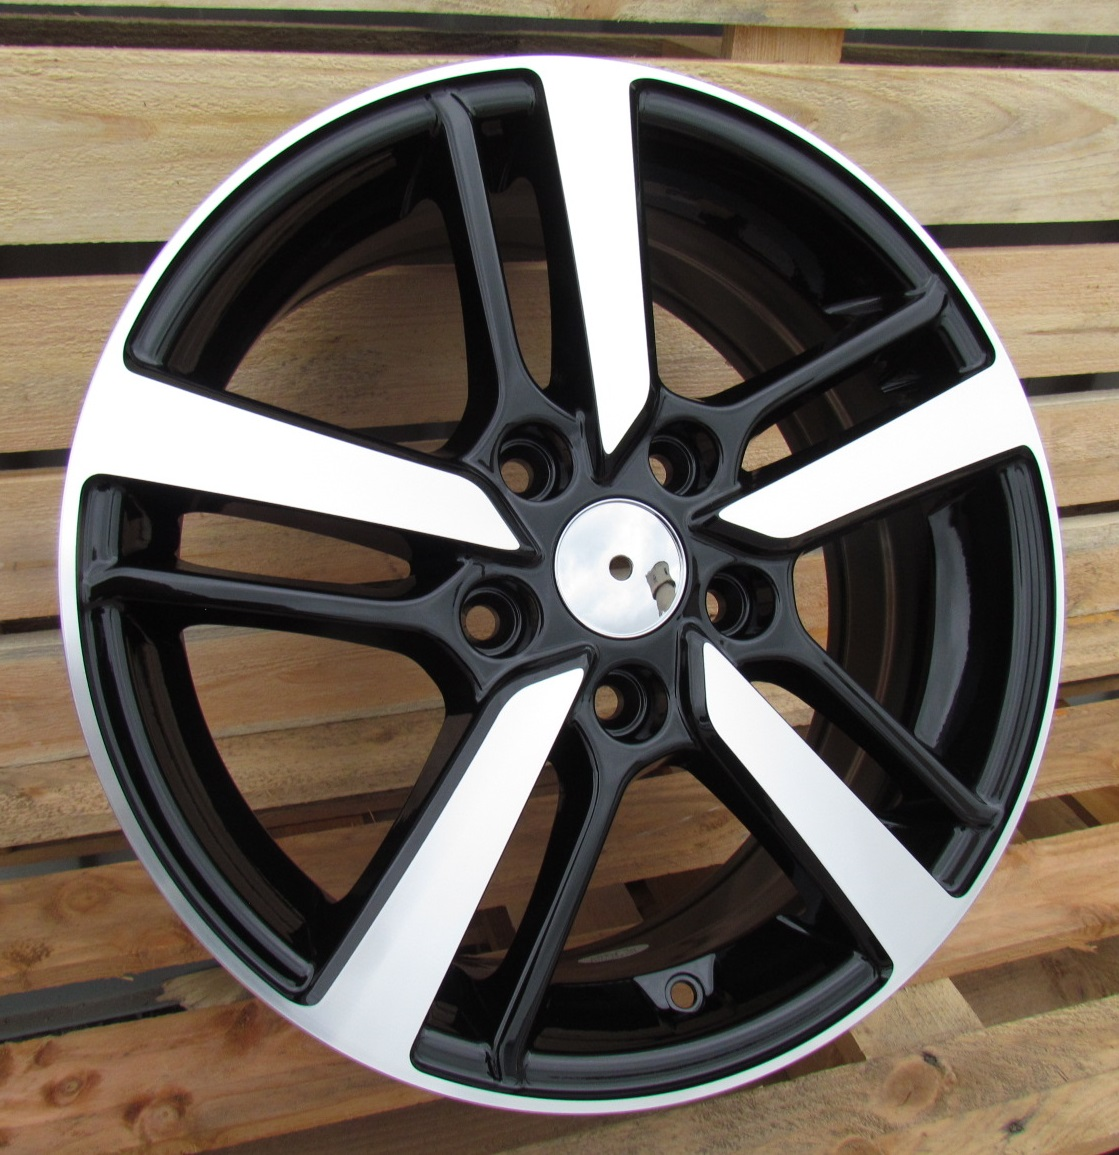 H17X7 5X114.3 ET45 67.1 A5463 MB+Powder coating RWR Hyunday (+3eur) (P) 7x17 ET45 5x114.3